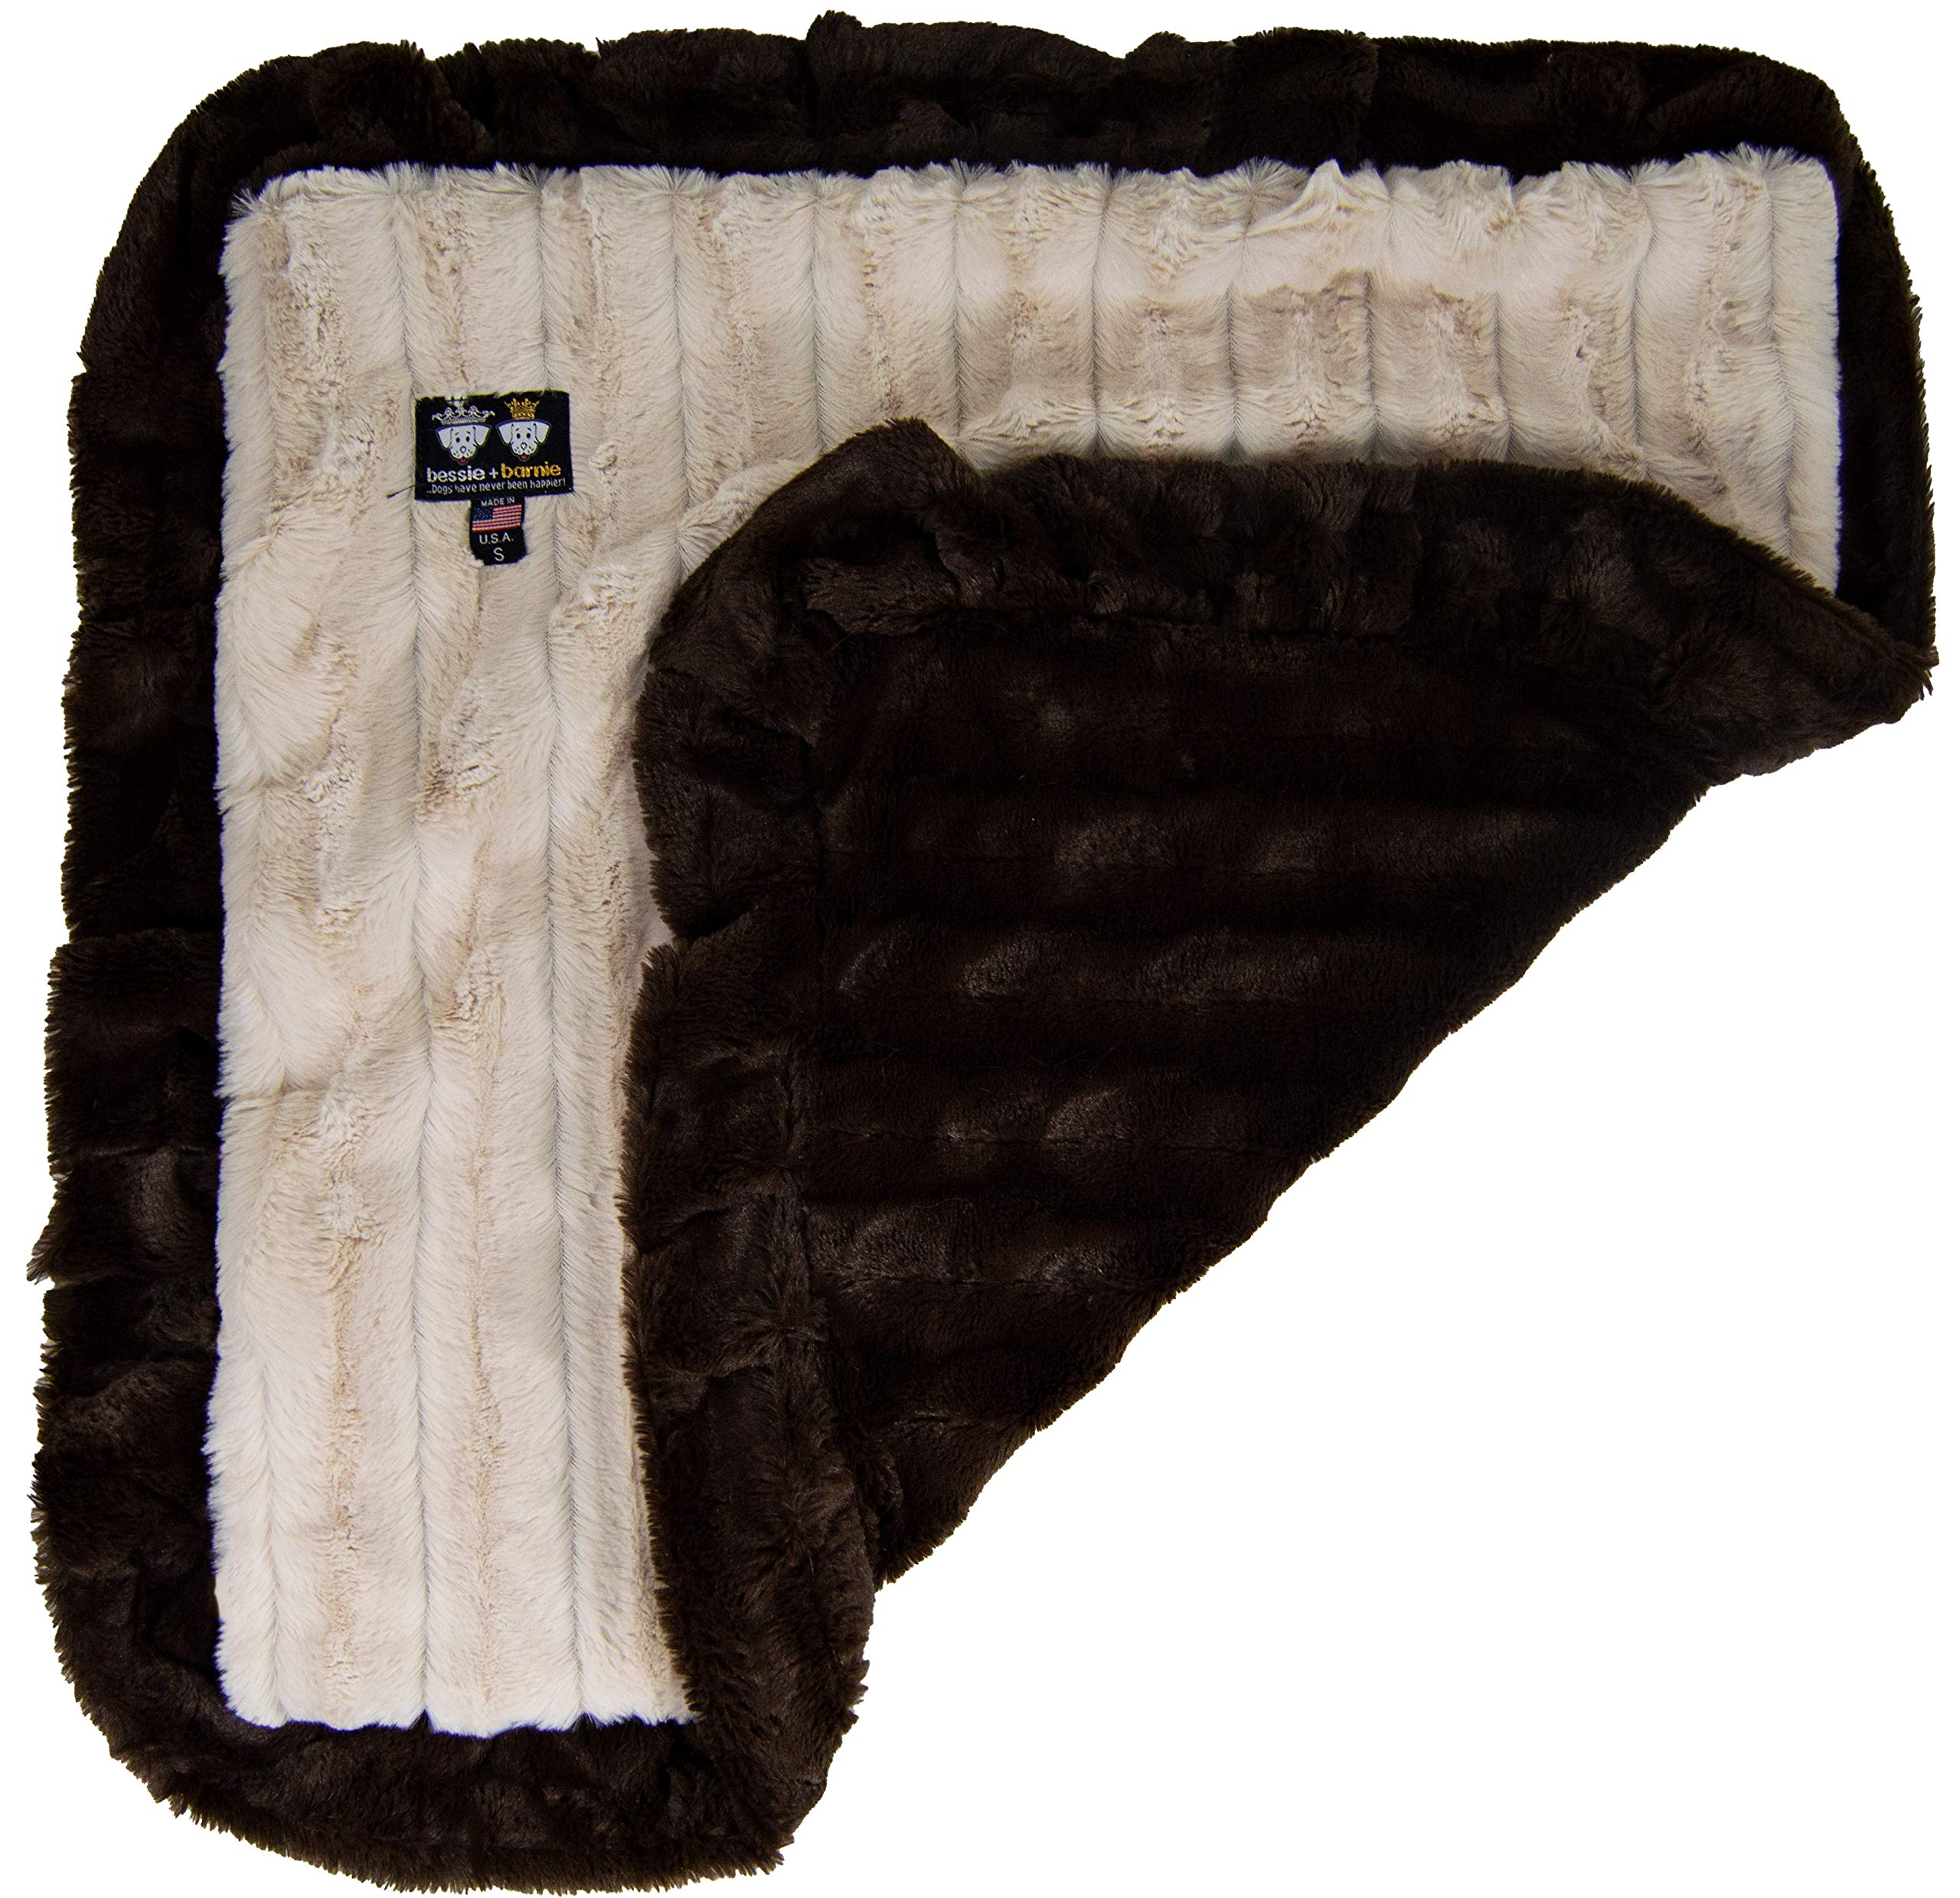 BESSIE AND BARNIE Natural Beauty/Godiva Brown (Ruffles) Luxury Ultra Plush Faux Fur Pet, Dog, Cat, Puppy Super Soft Reversible Blanket (Multiple Sizes)